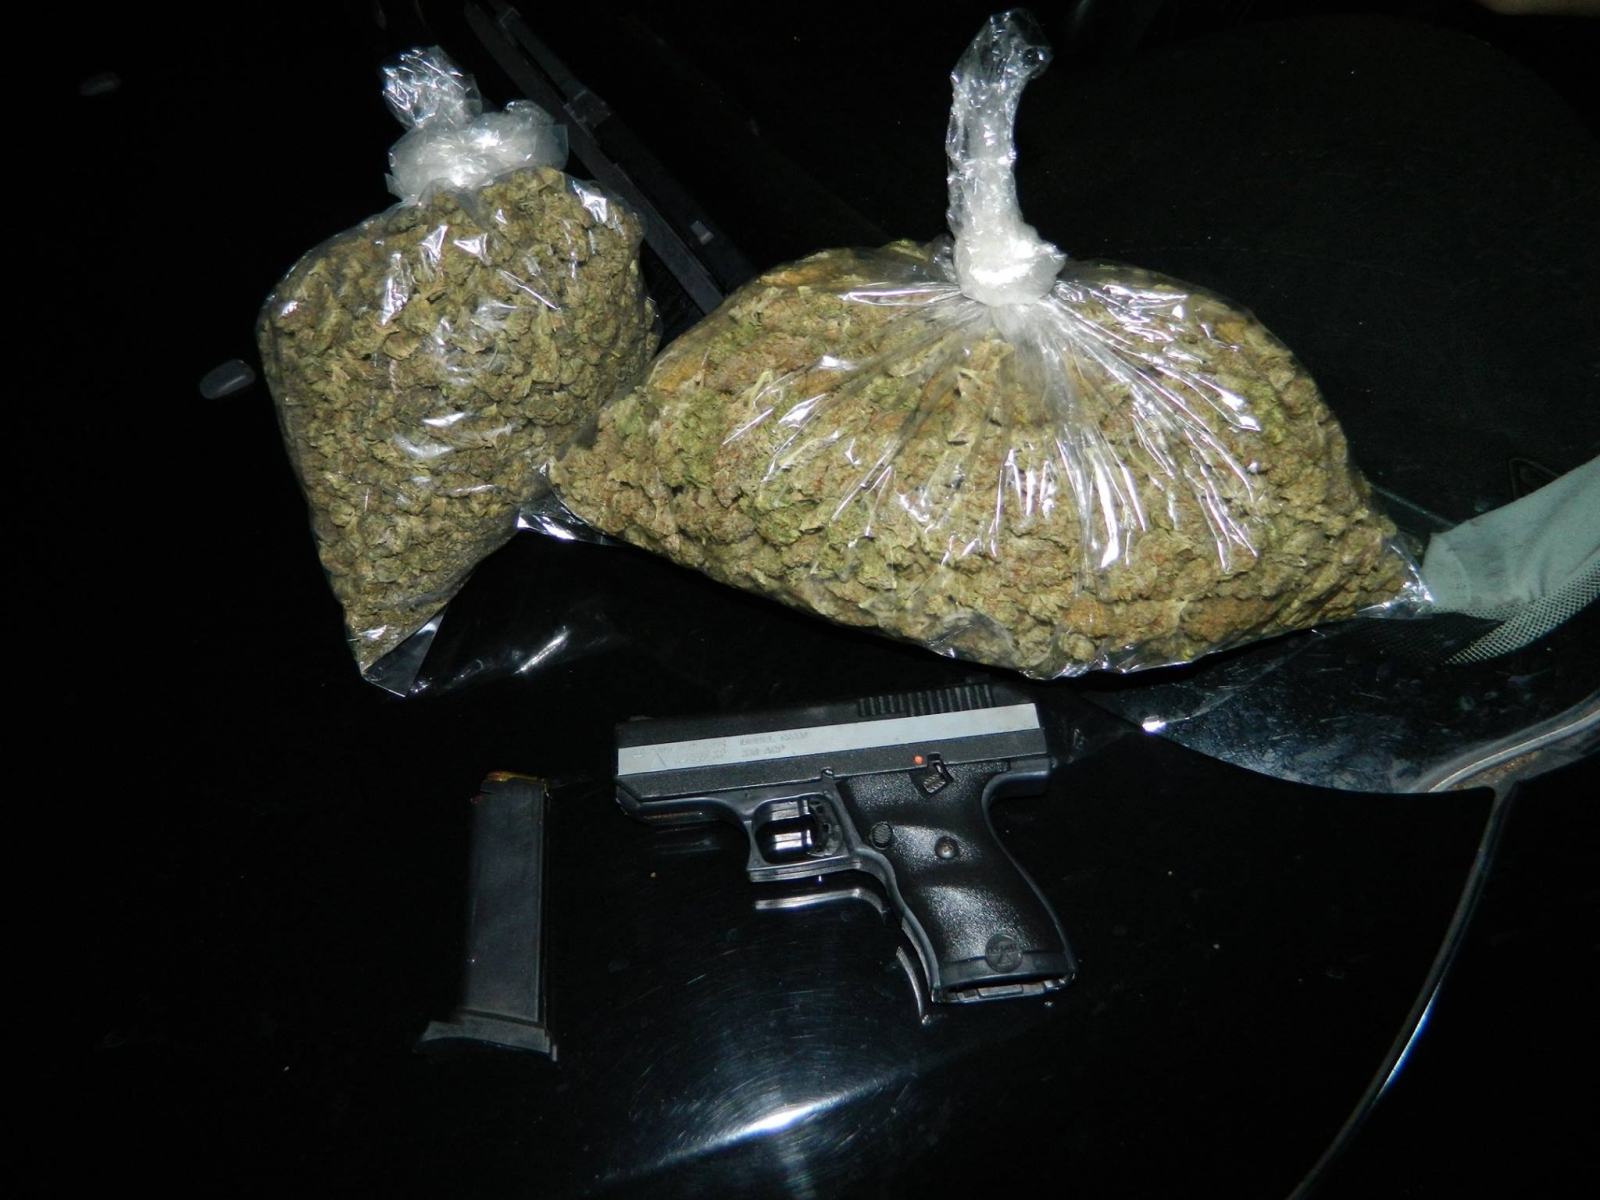 Marijuana and firearm found by police